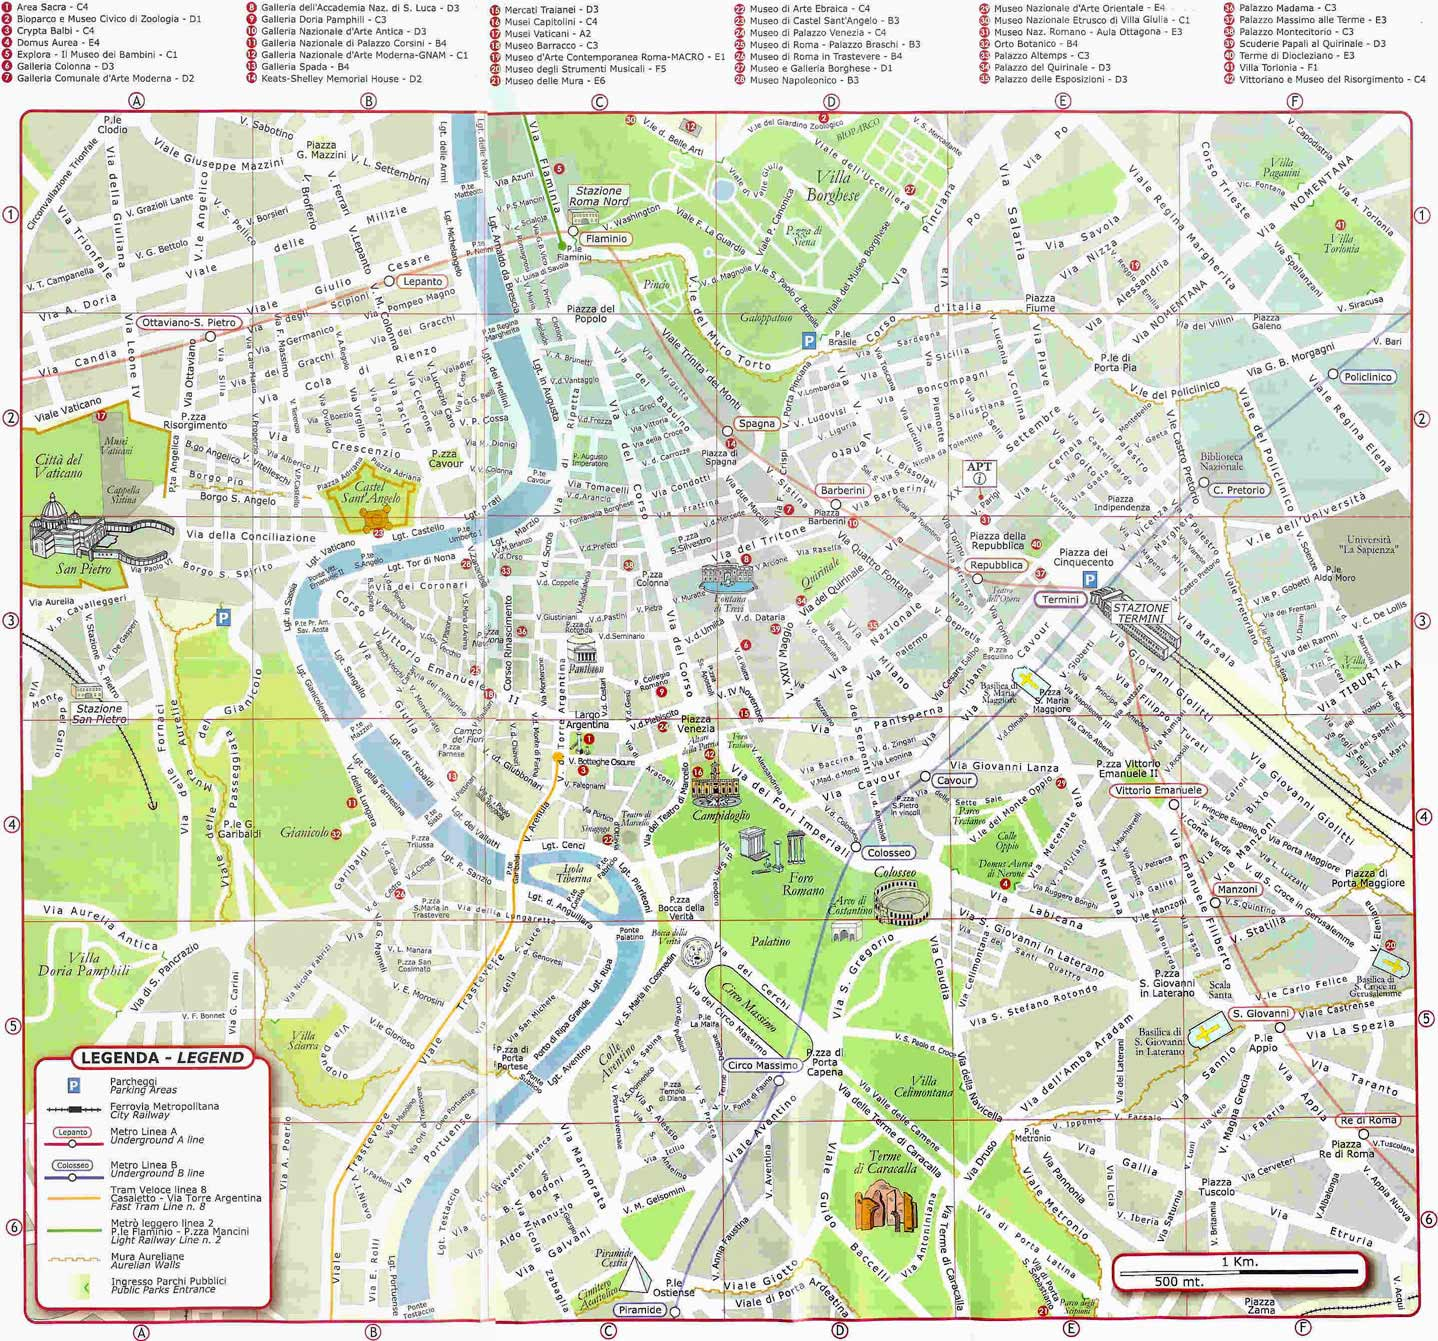 Maps of Rome Italy Roma Italia Maps Goparoo – Rome Tourist Attractions Map